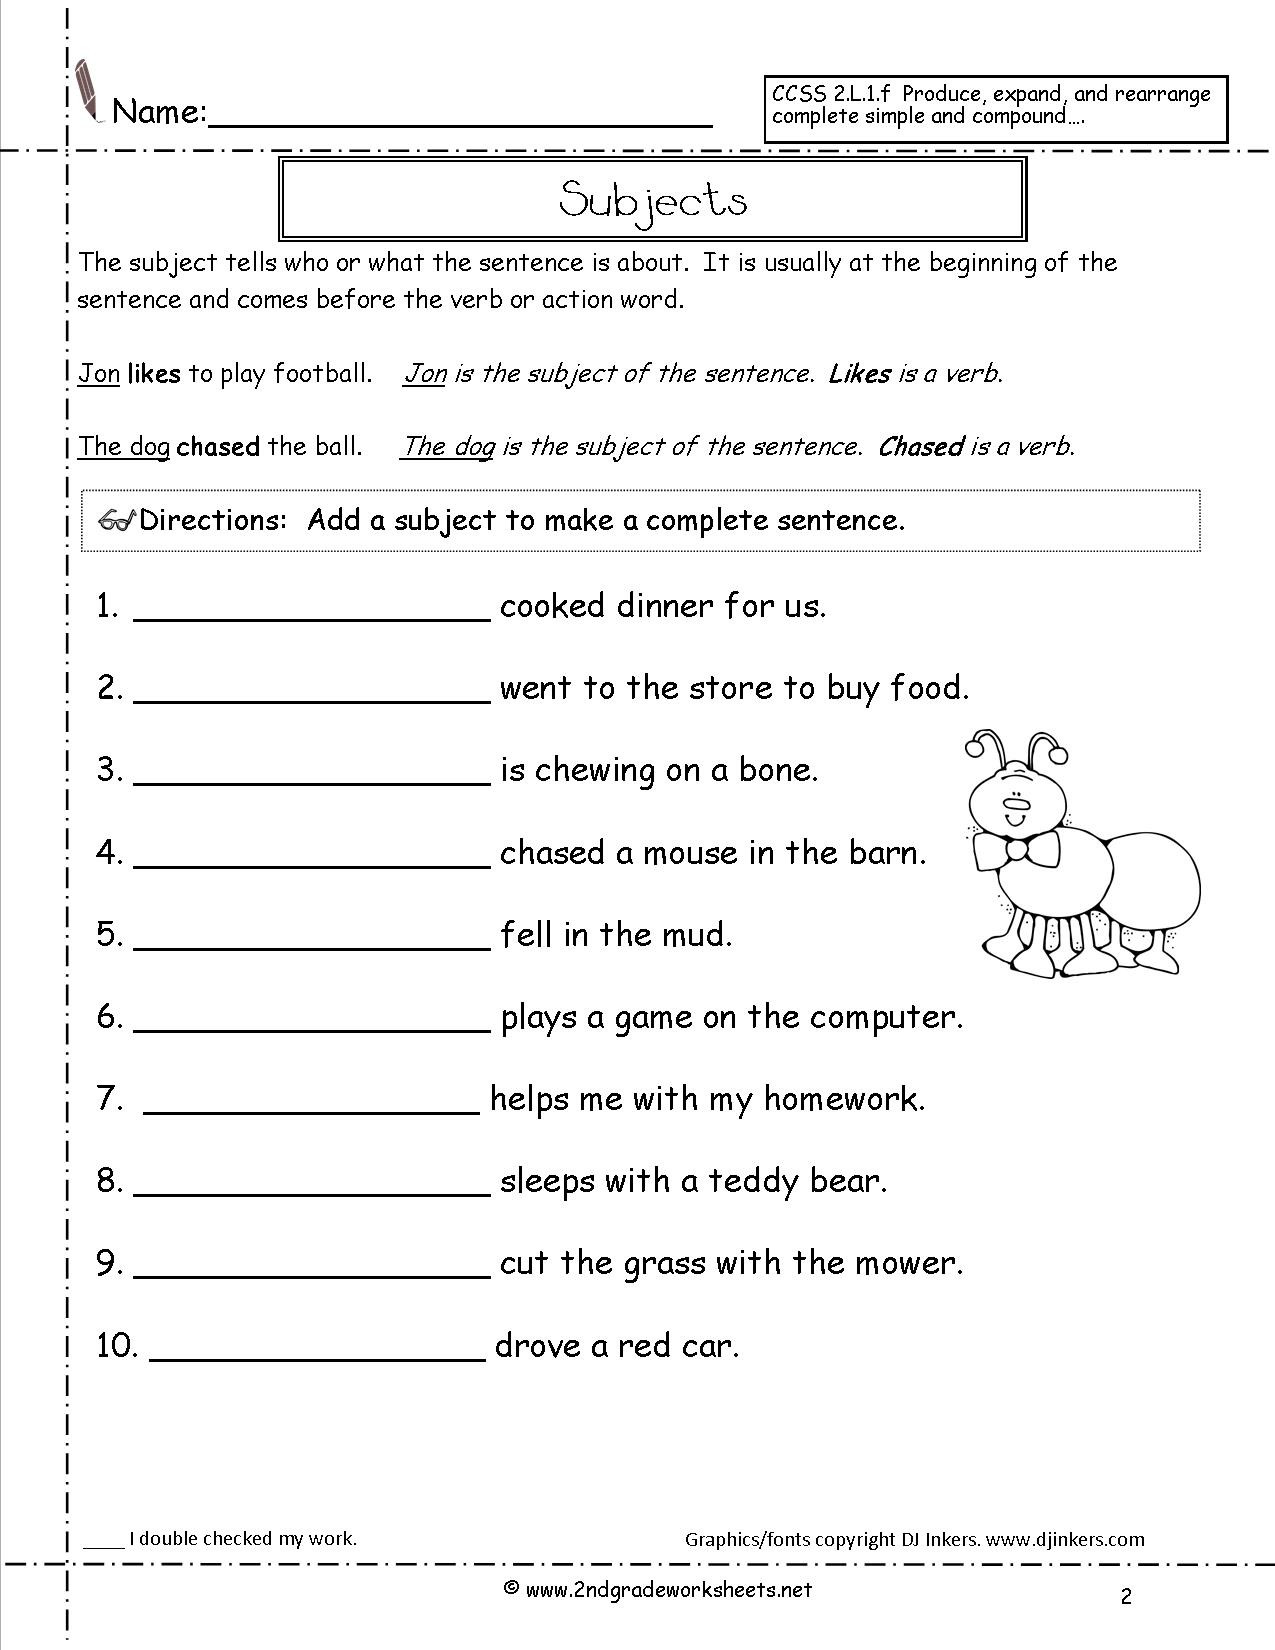 Writing Sentences Worksheets 3rd Grade Basic Math Words Printable Cursive Worksheets 3rd Grade